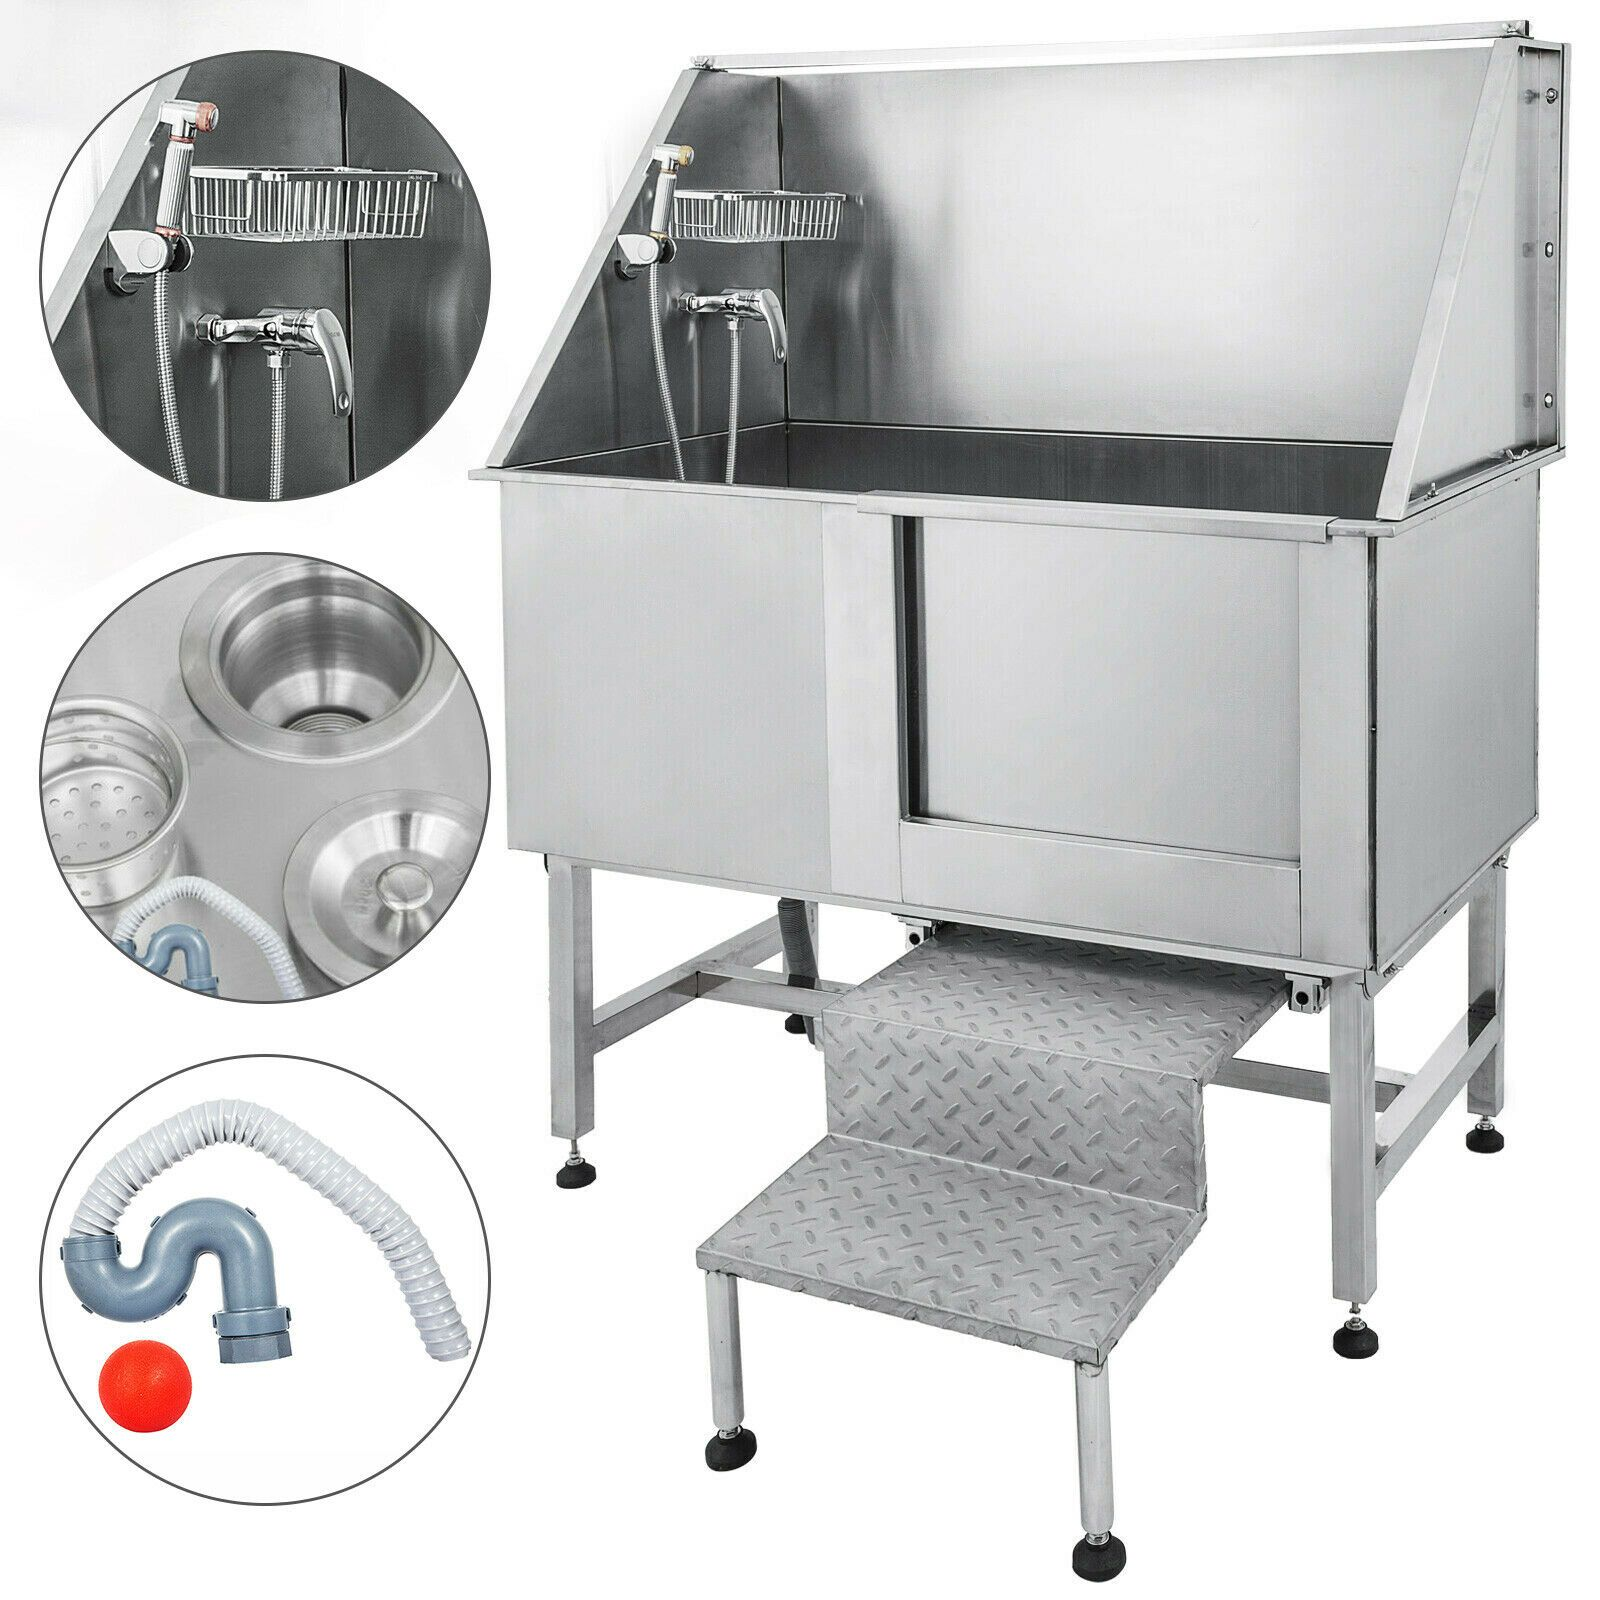 50 Pet Grooming Tub Dog Cat Bath Tub Professional Stainless Steel Wash Shower Ebay In 2020 Pet Grooming Tub Dog Grooming Tubs Hunting Dog Collars